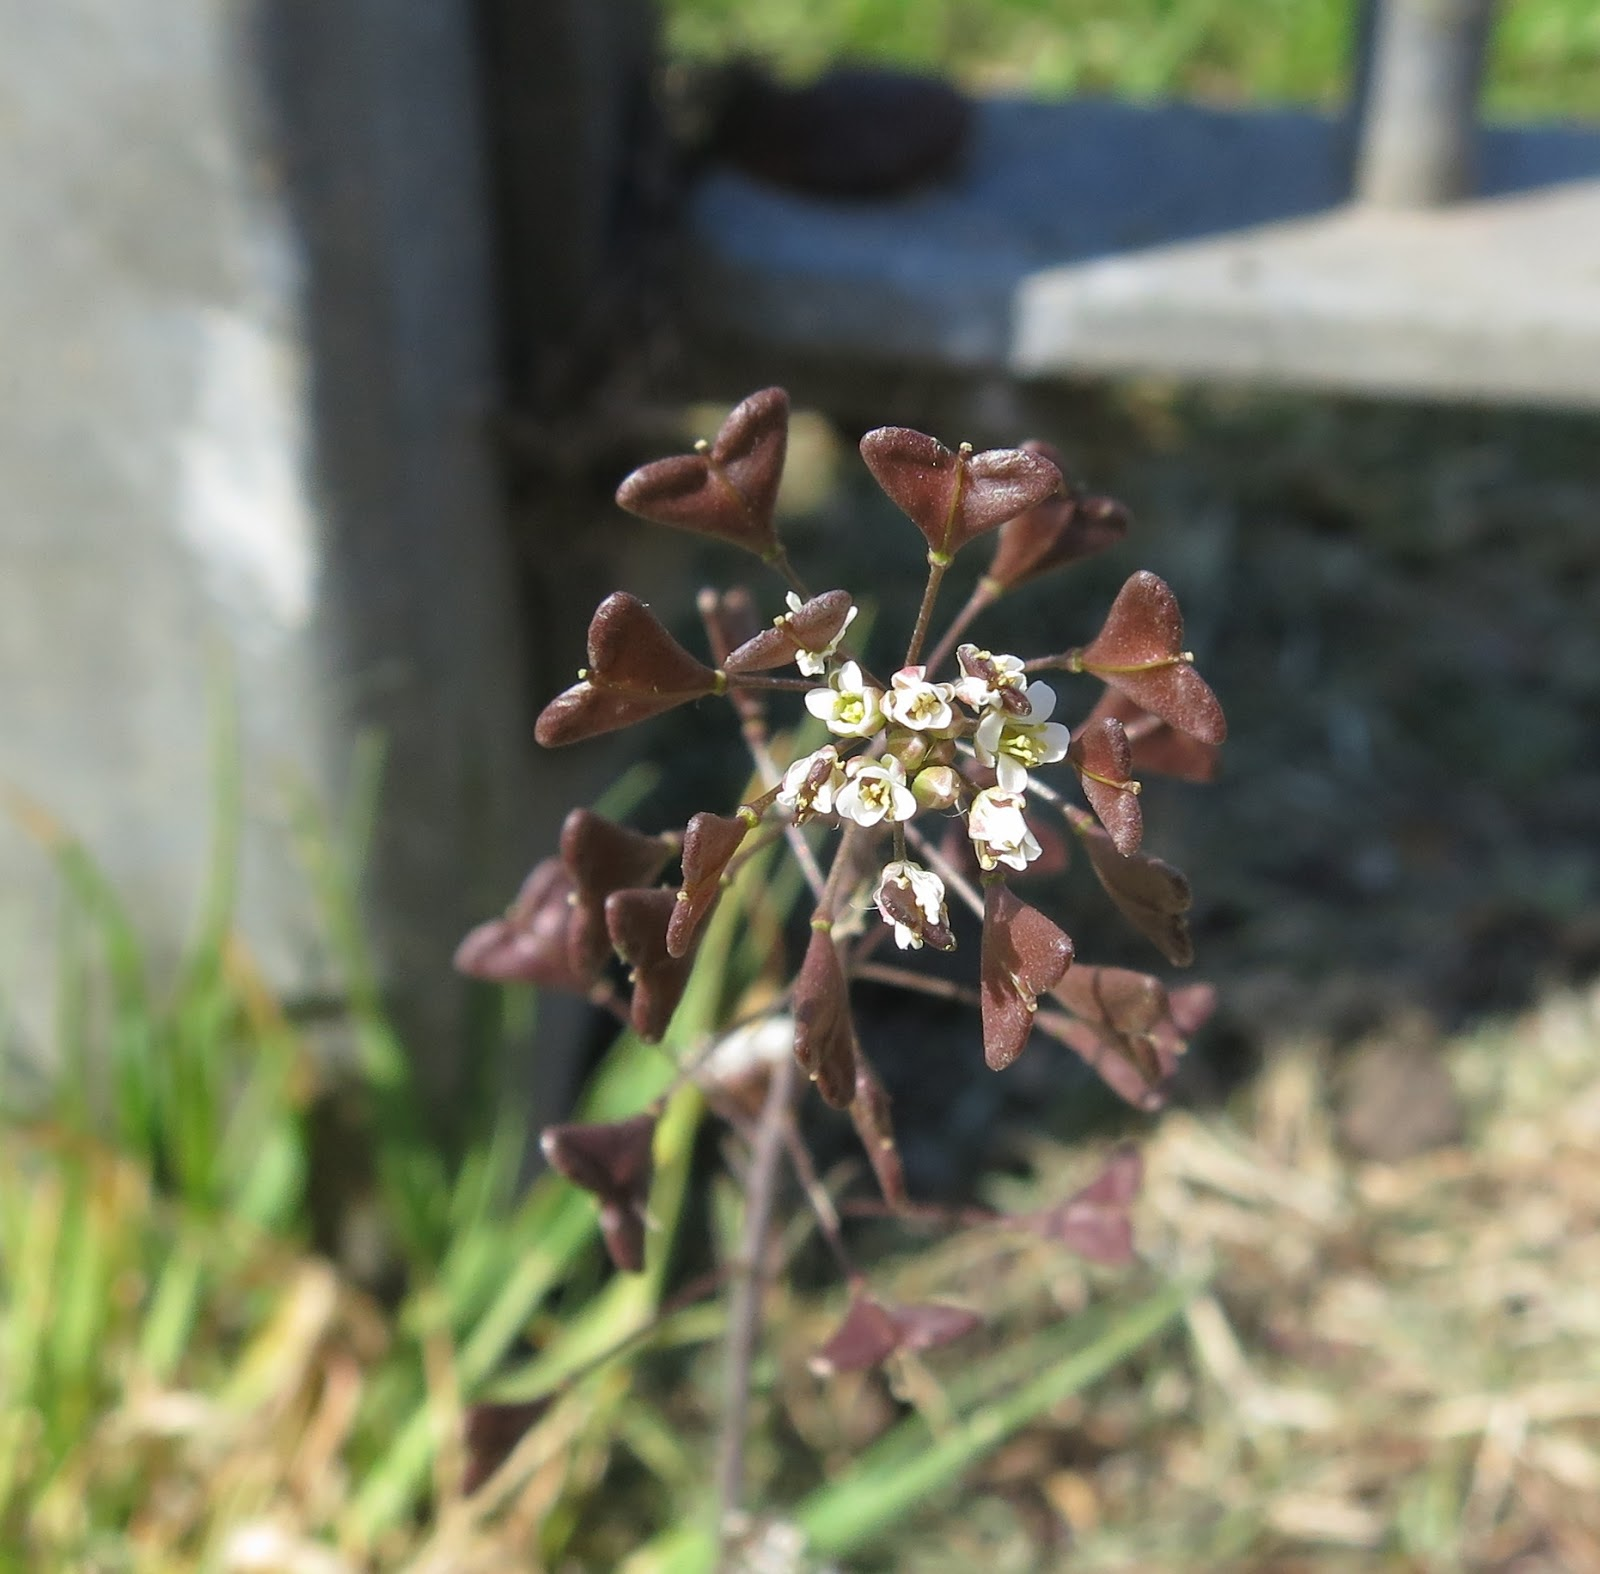 White flowers and dark brown seedpods on Shepherd's Purse plant